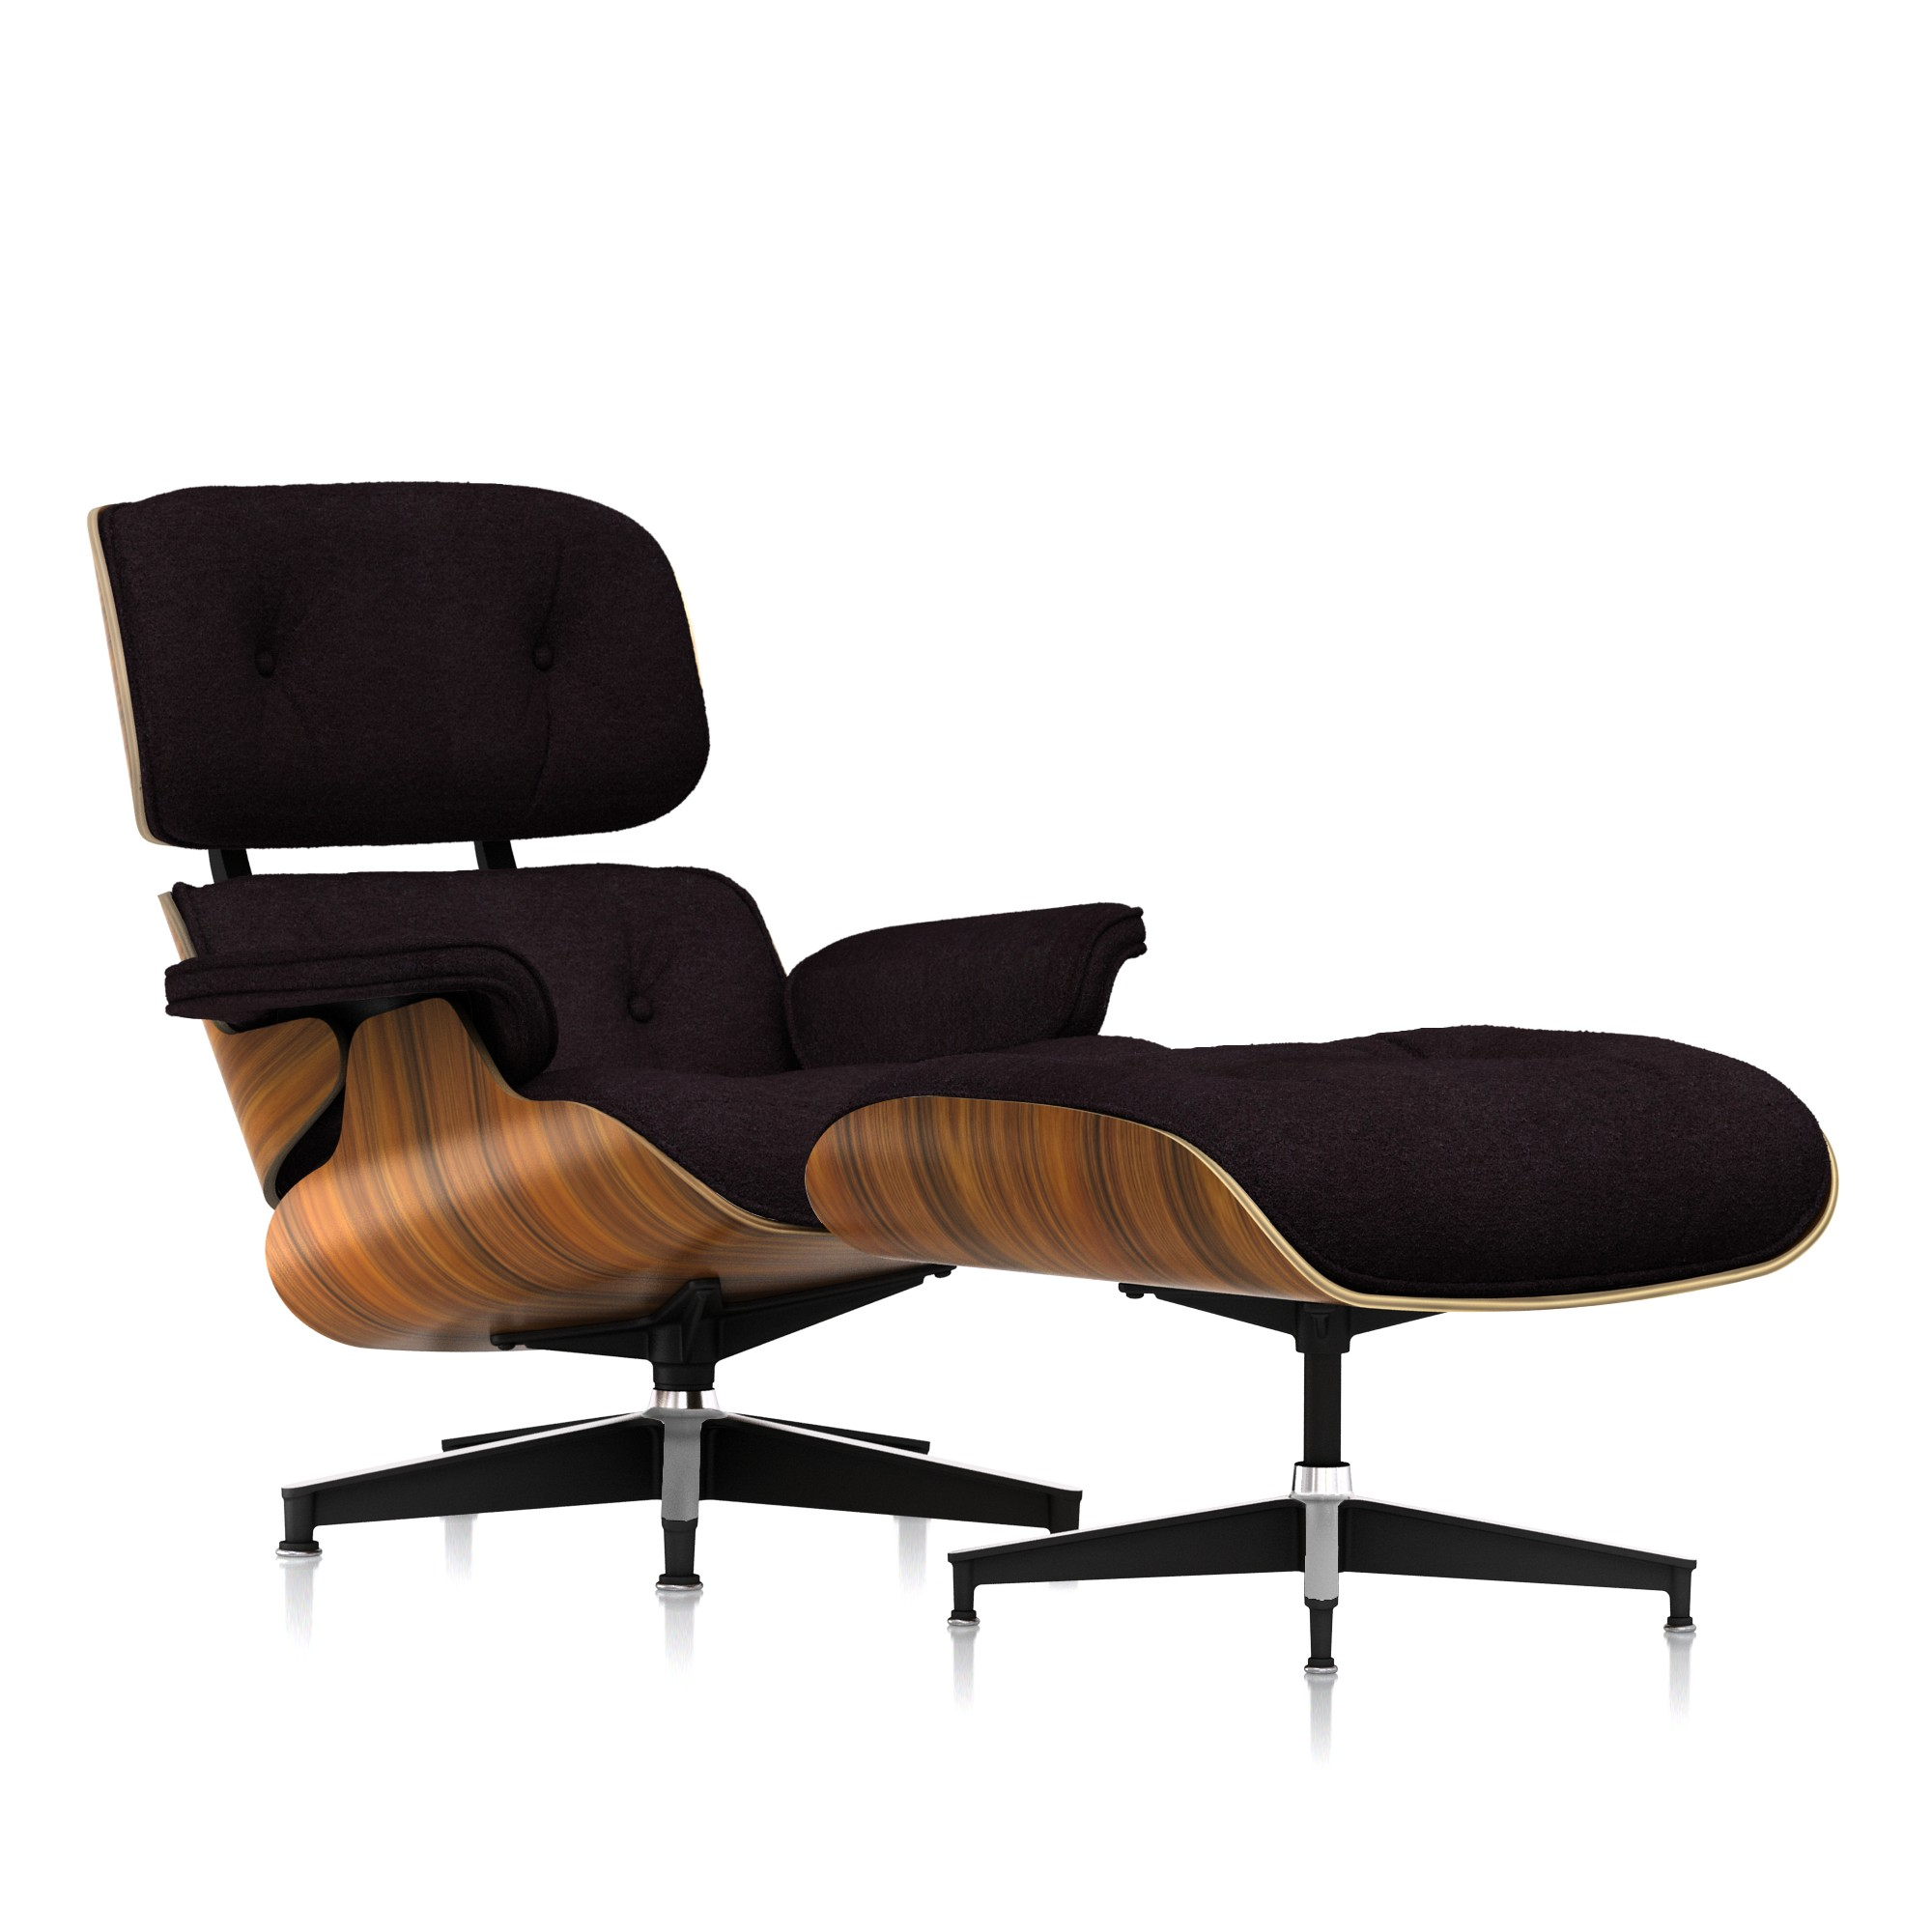 Eames Lounge Chair and Ottoman in Rich Chocolate Mohair Supreme Classic by Herman Miller